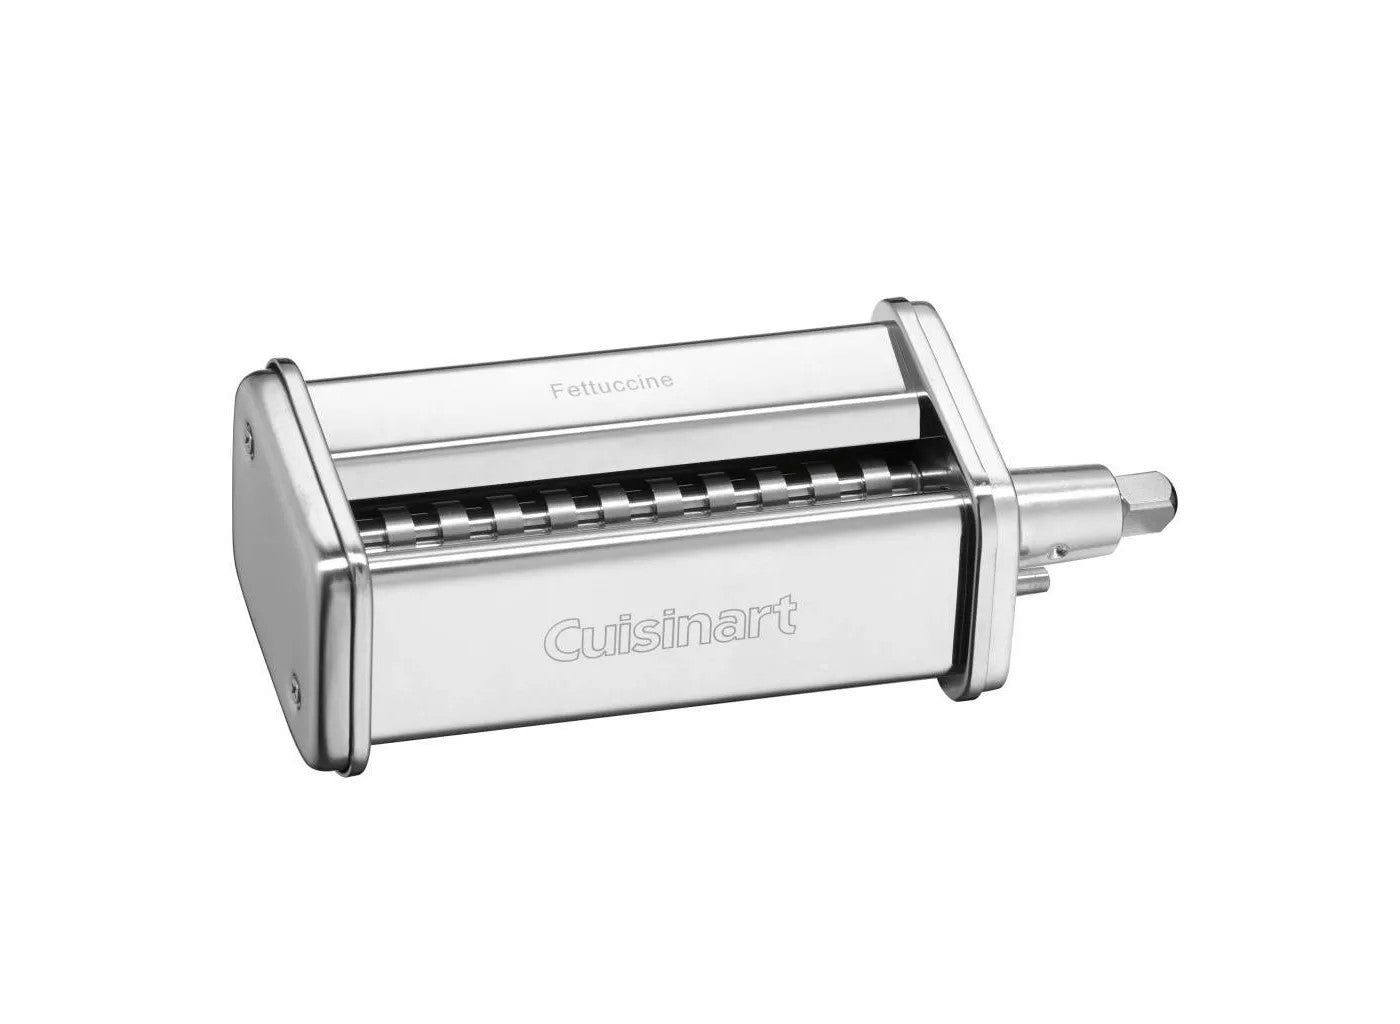 Cuisinart PRS-50 Pasta Roller and Cutter Attachment